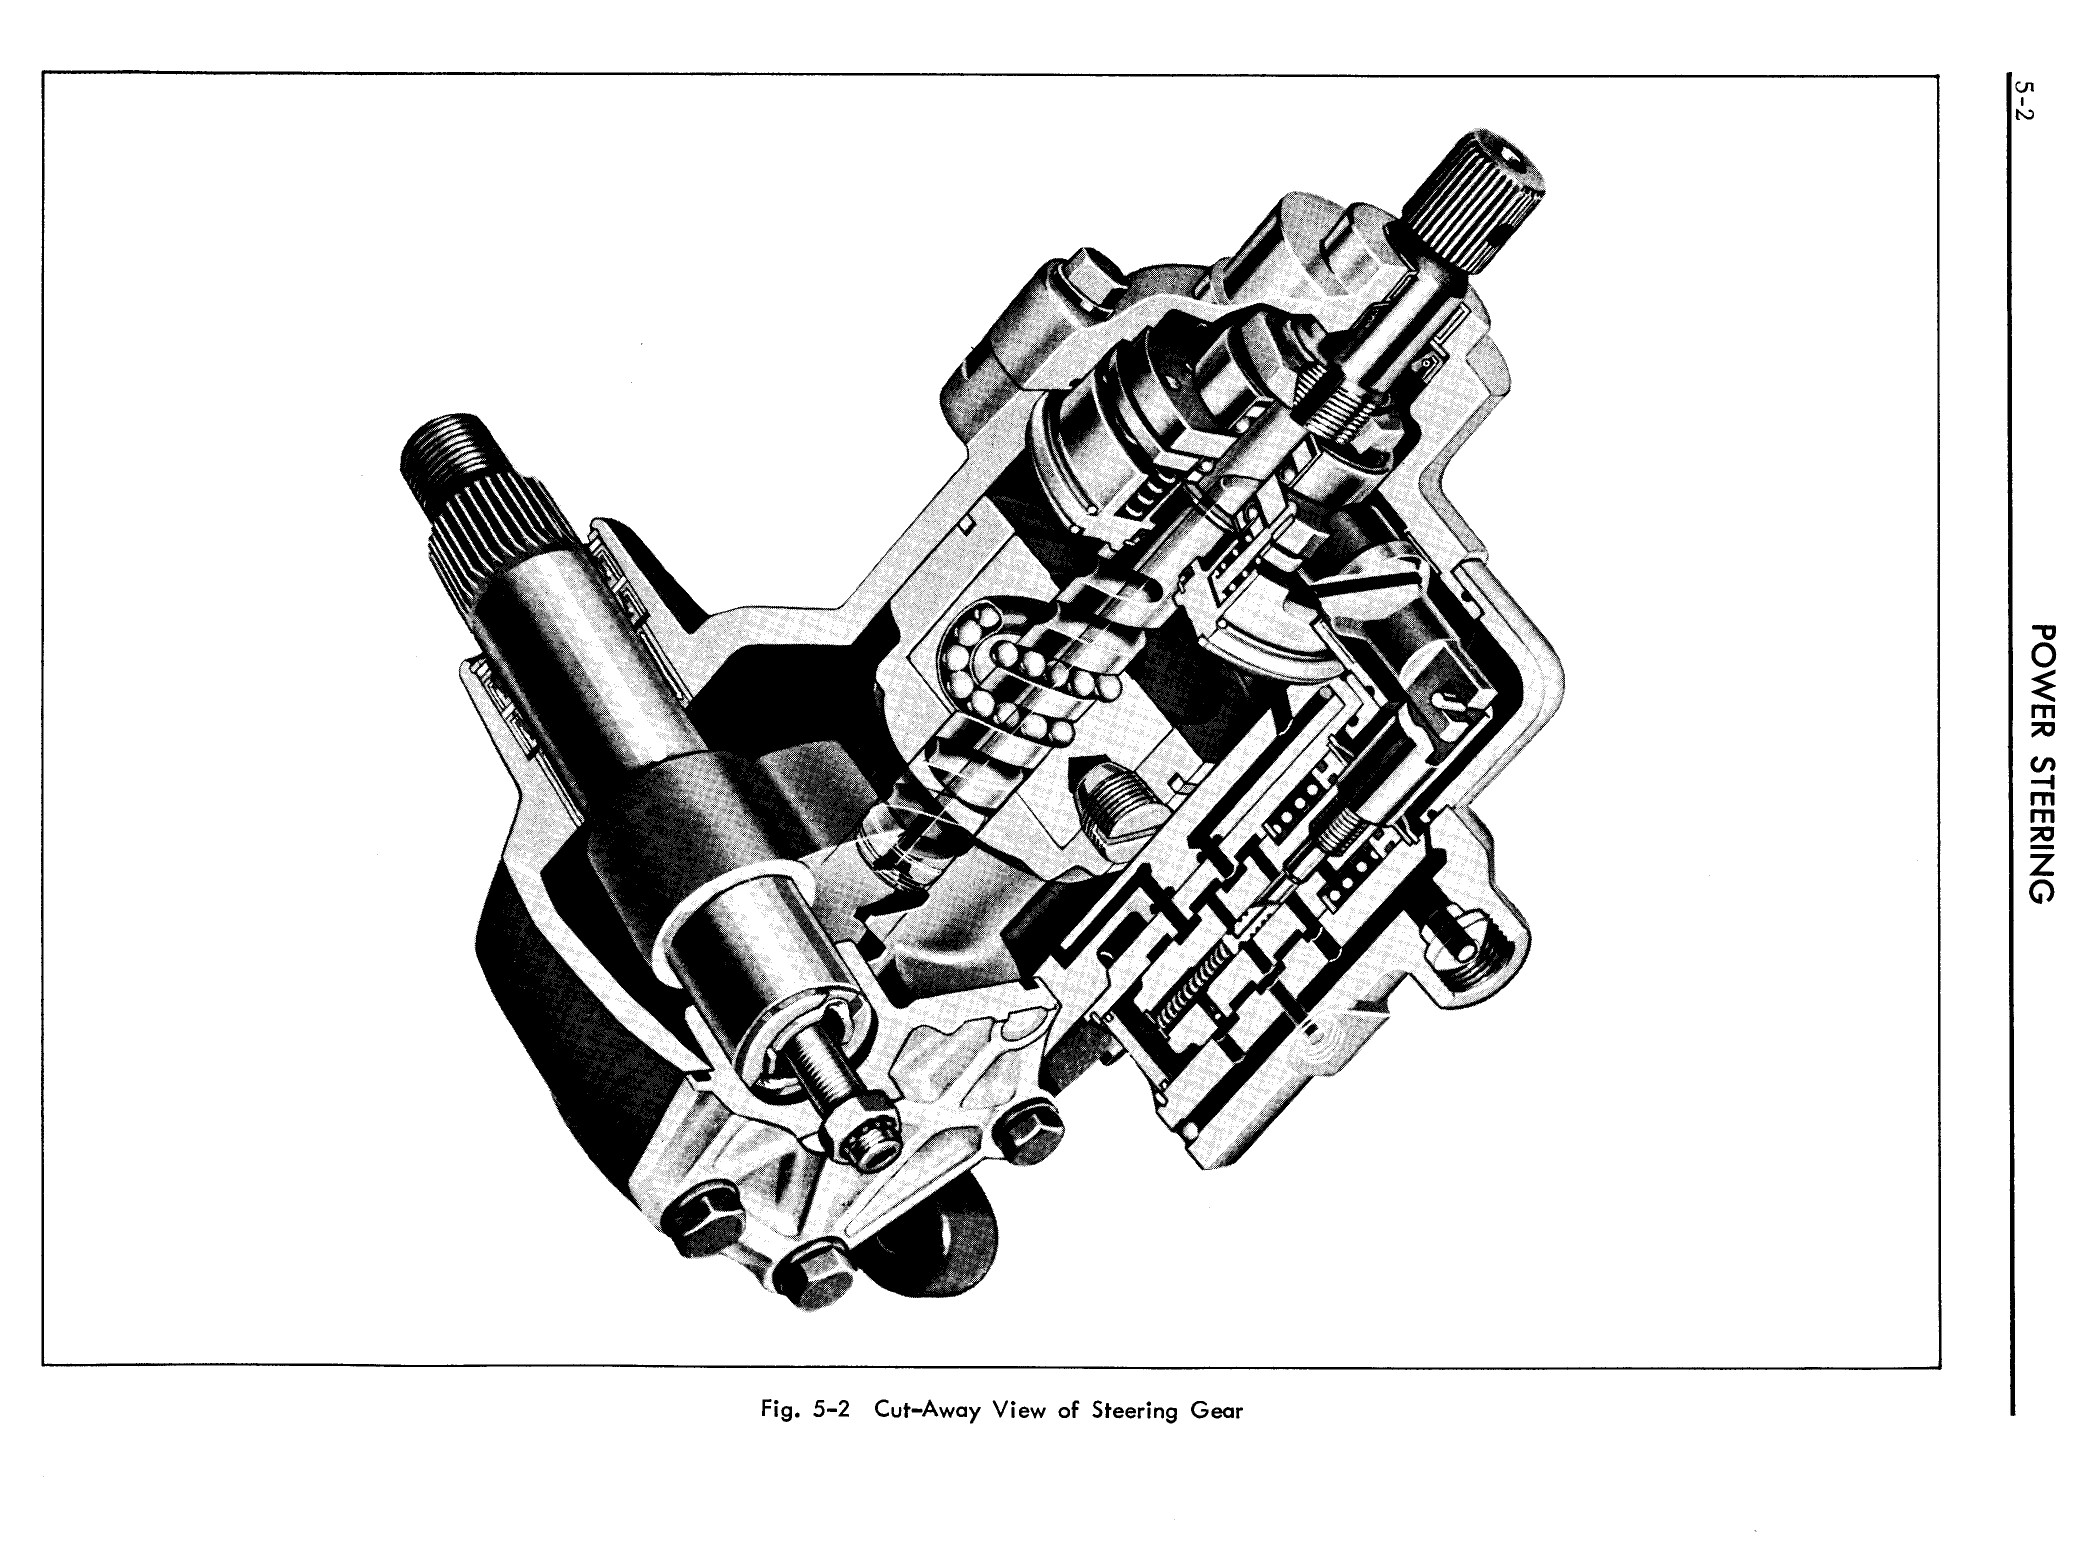 1957 Cadillac Shop Manual- Power Steering Page 2 of 26